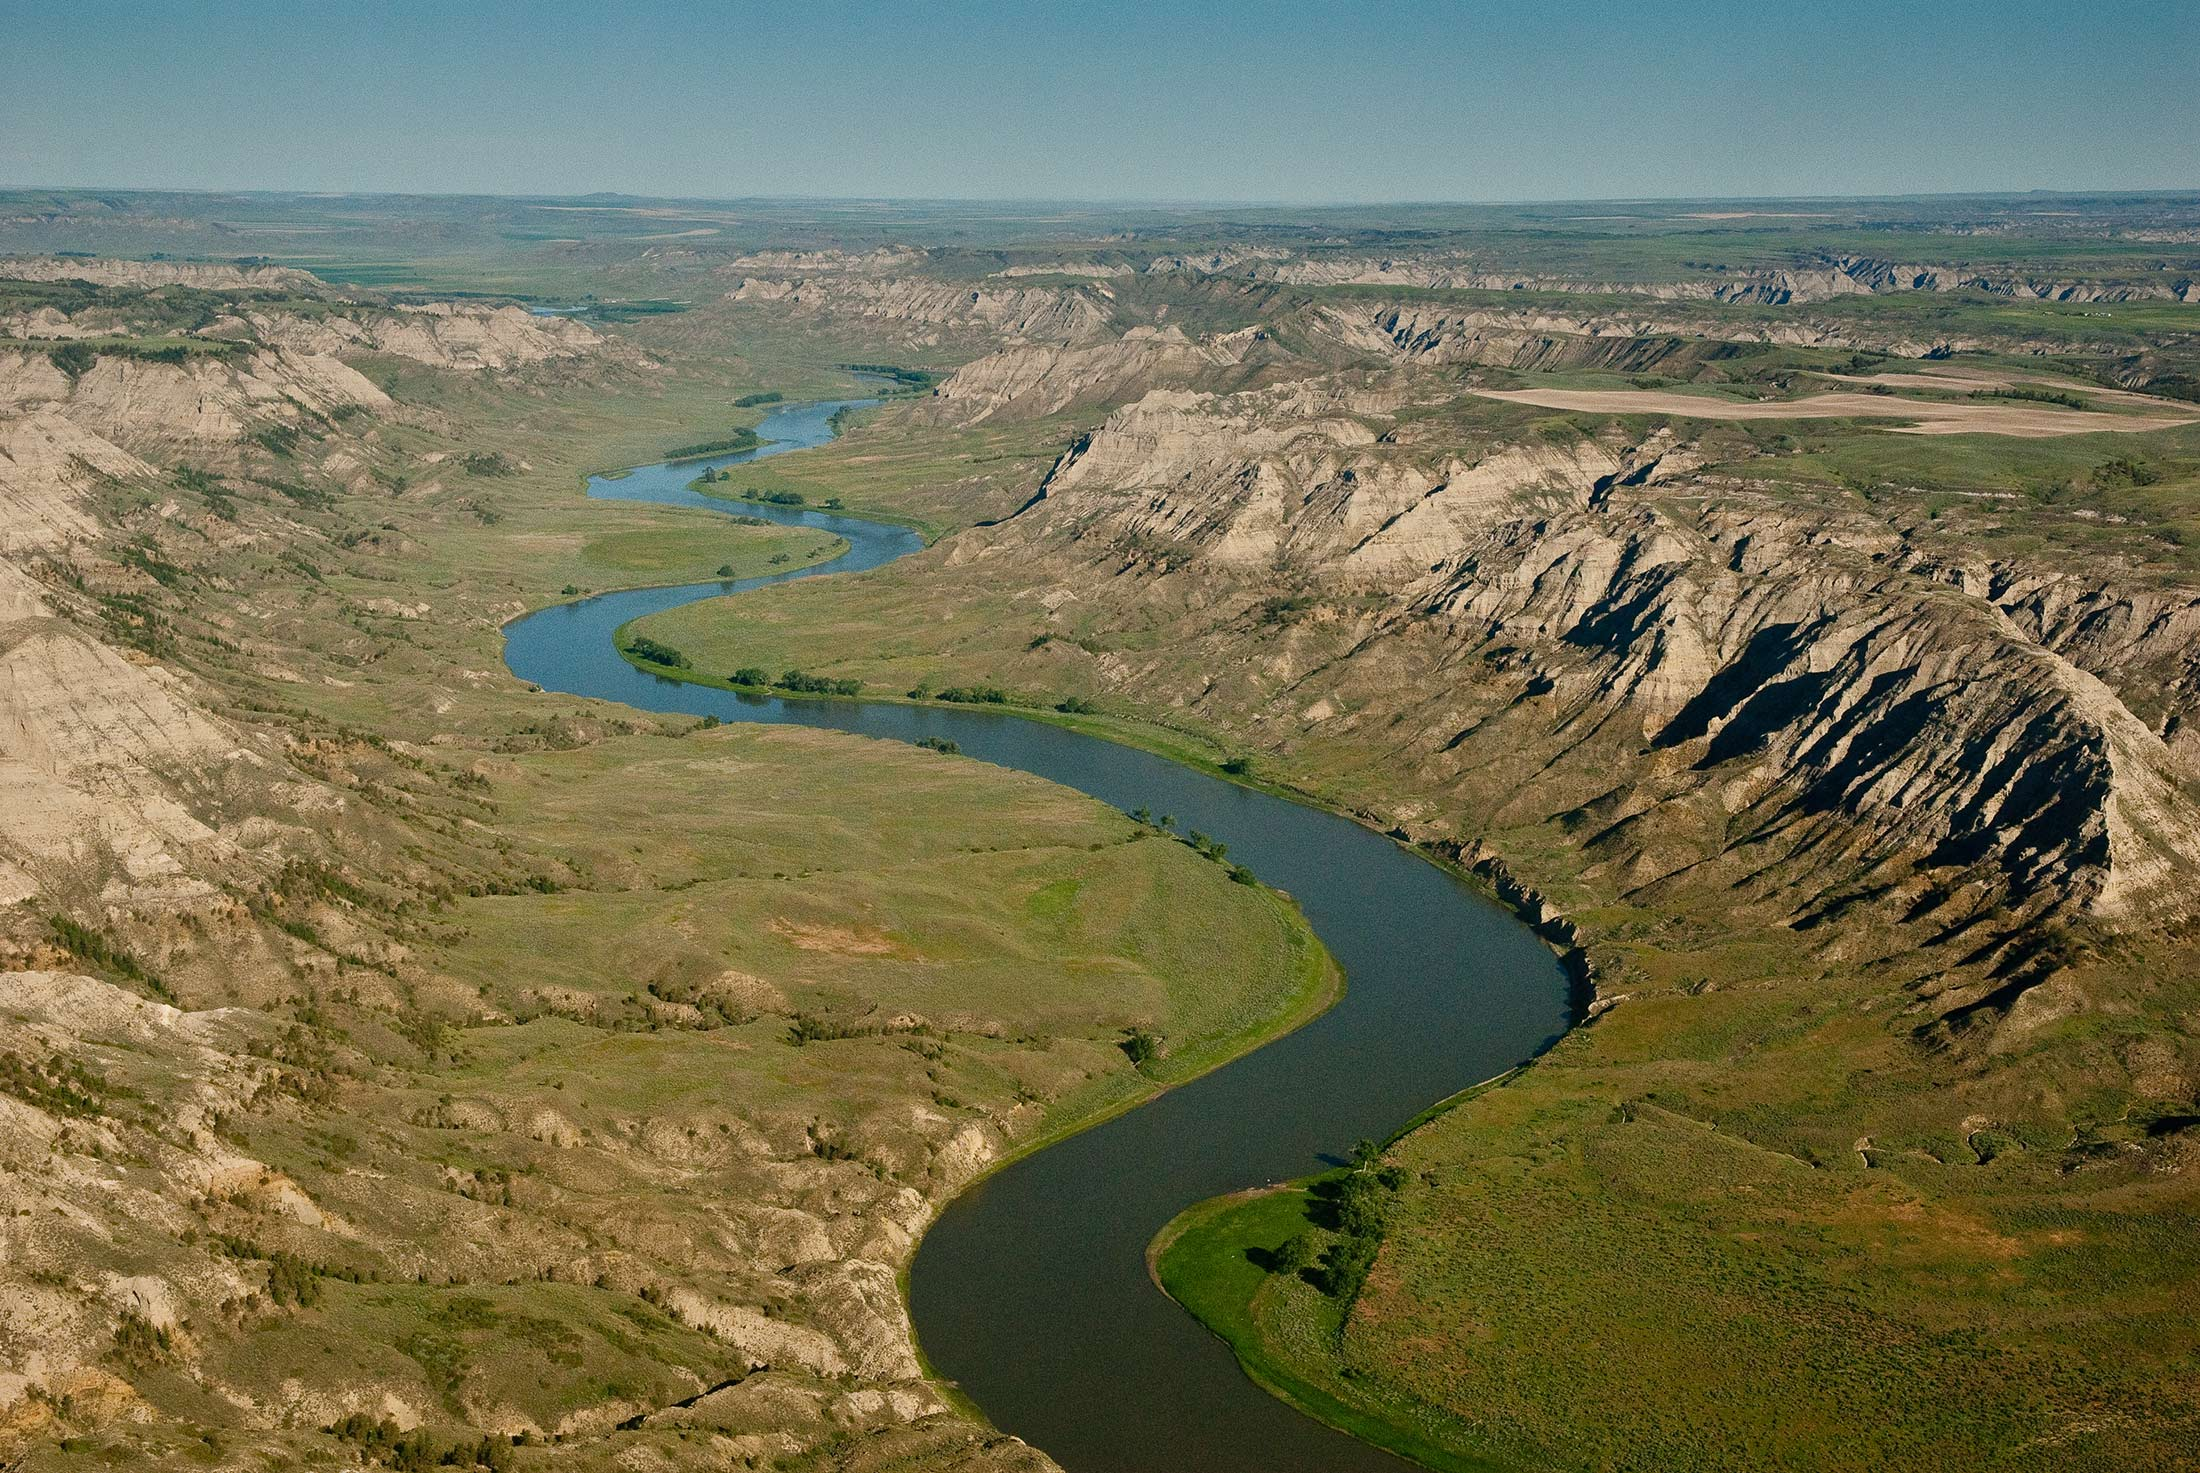 Rivers in Montana's Missouri River Country